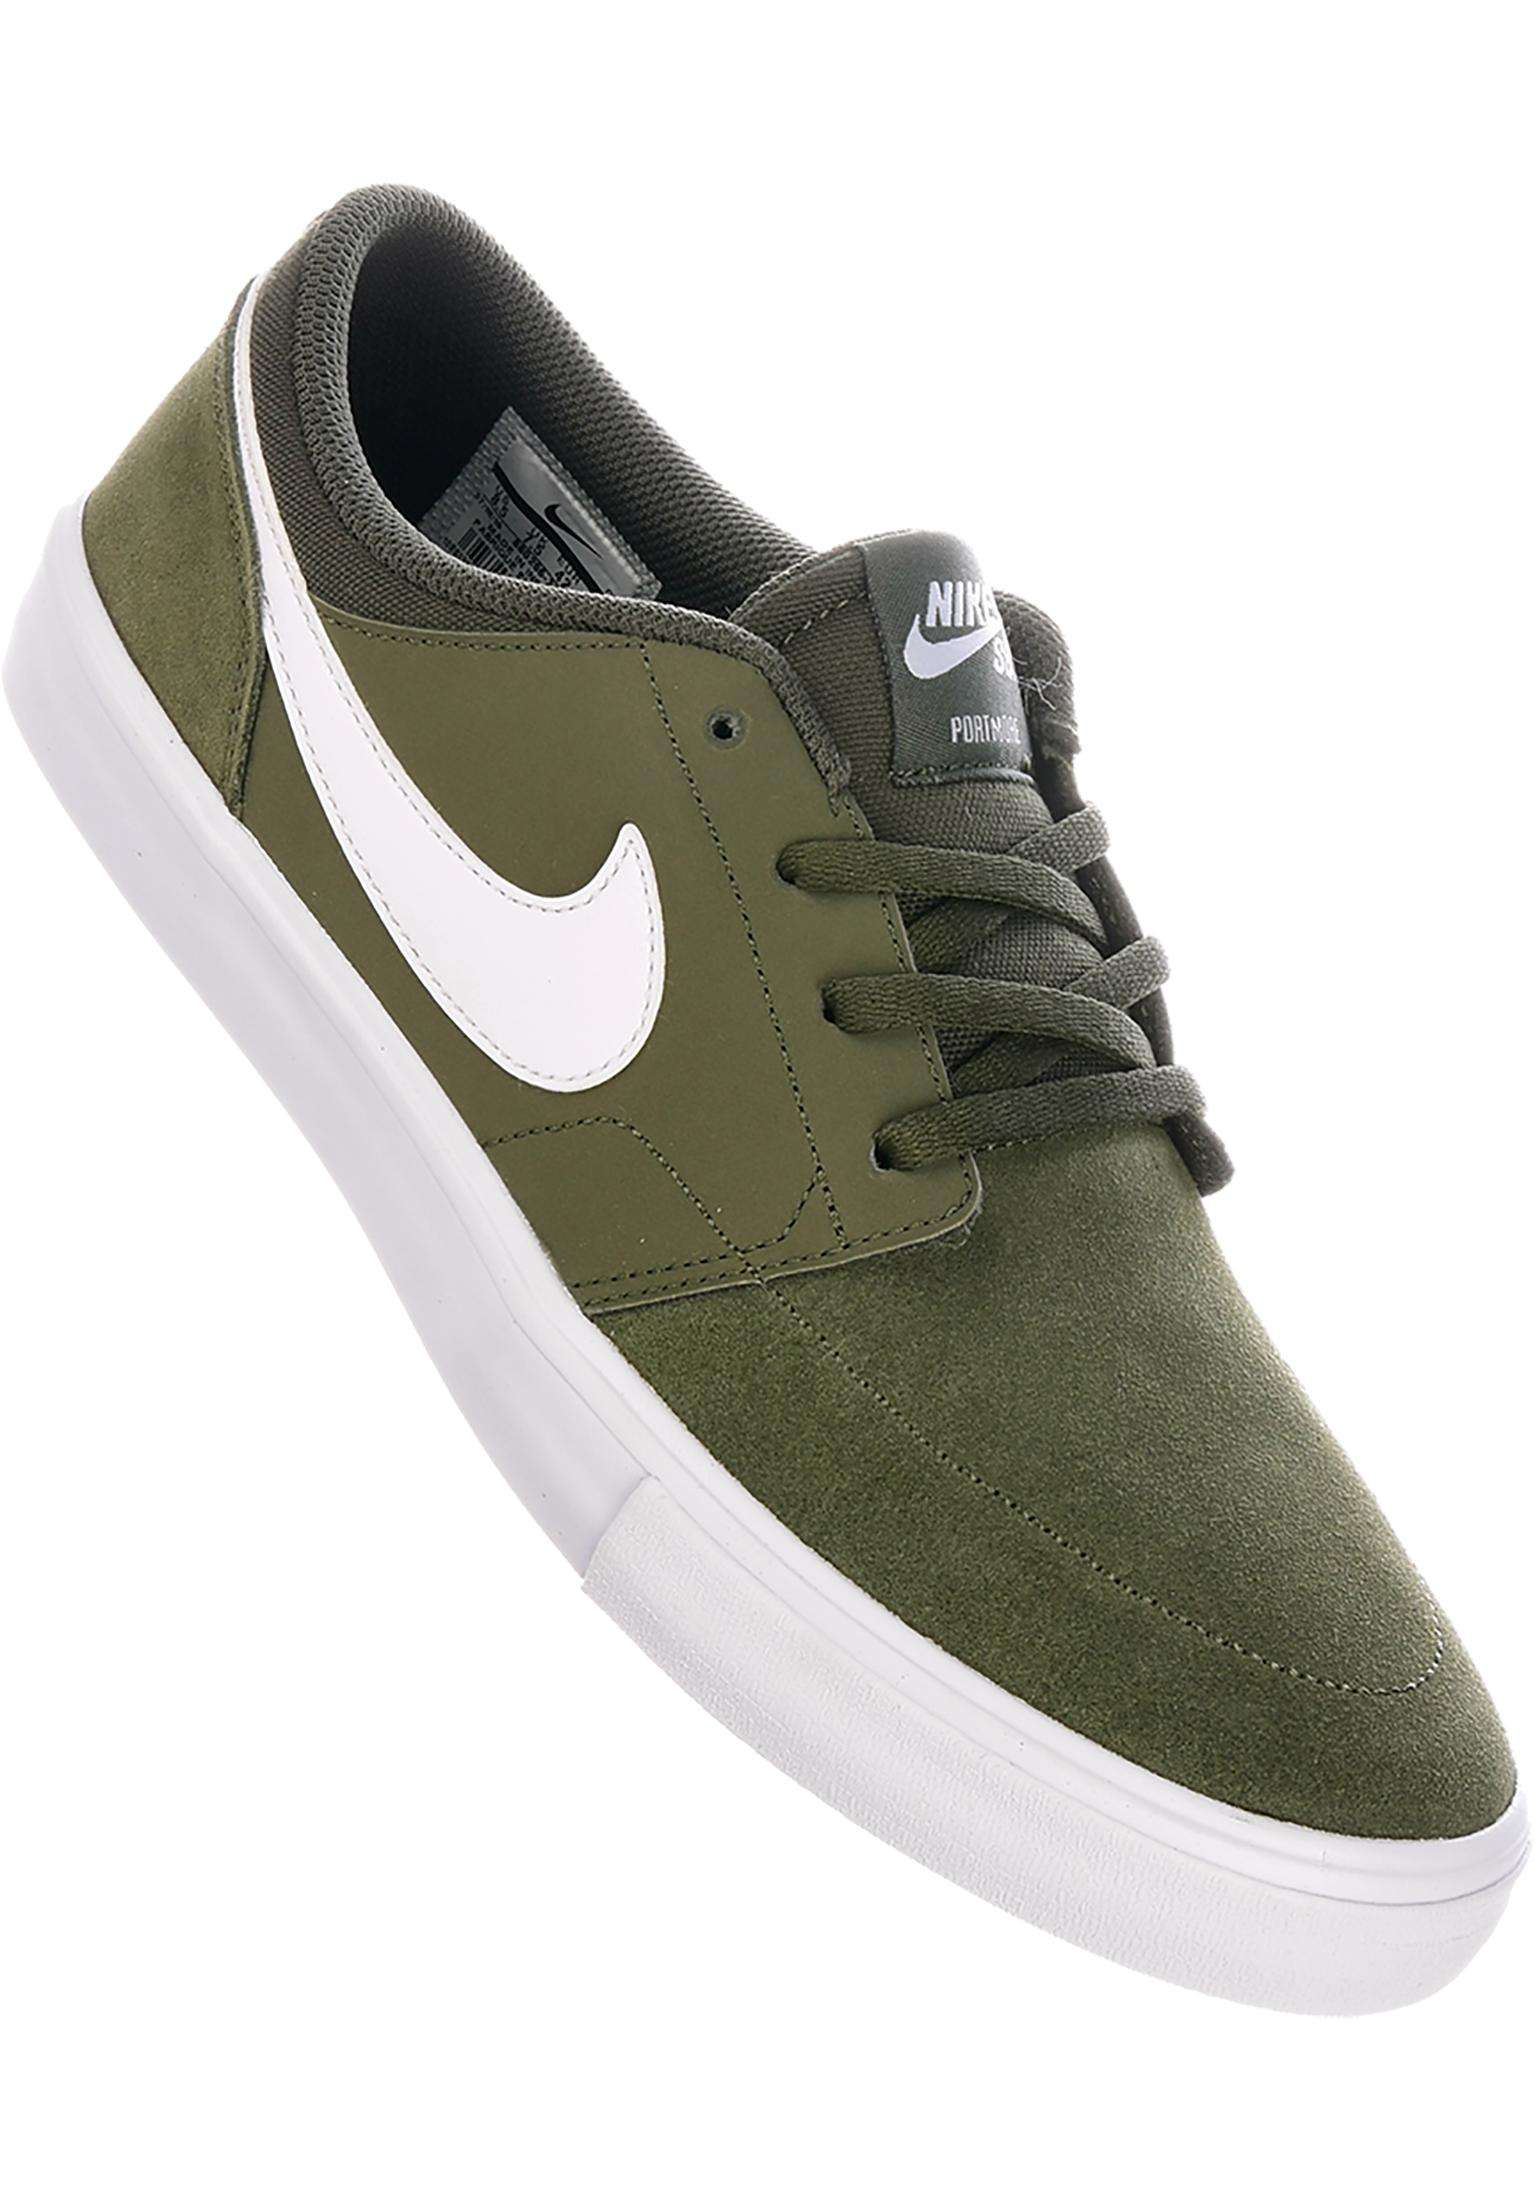 huge selection of 457df ee93d Solarsoft Portmore II Nike SB All Shoes in cargokhaki-white for Men   Titus